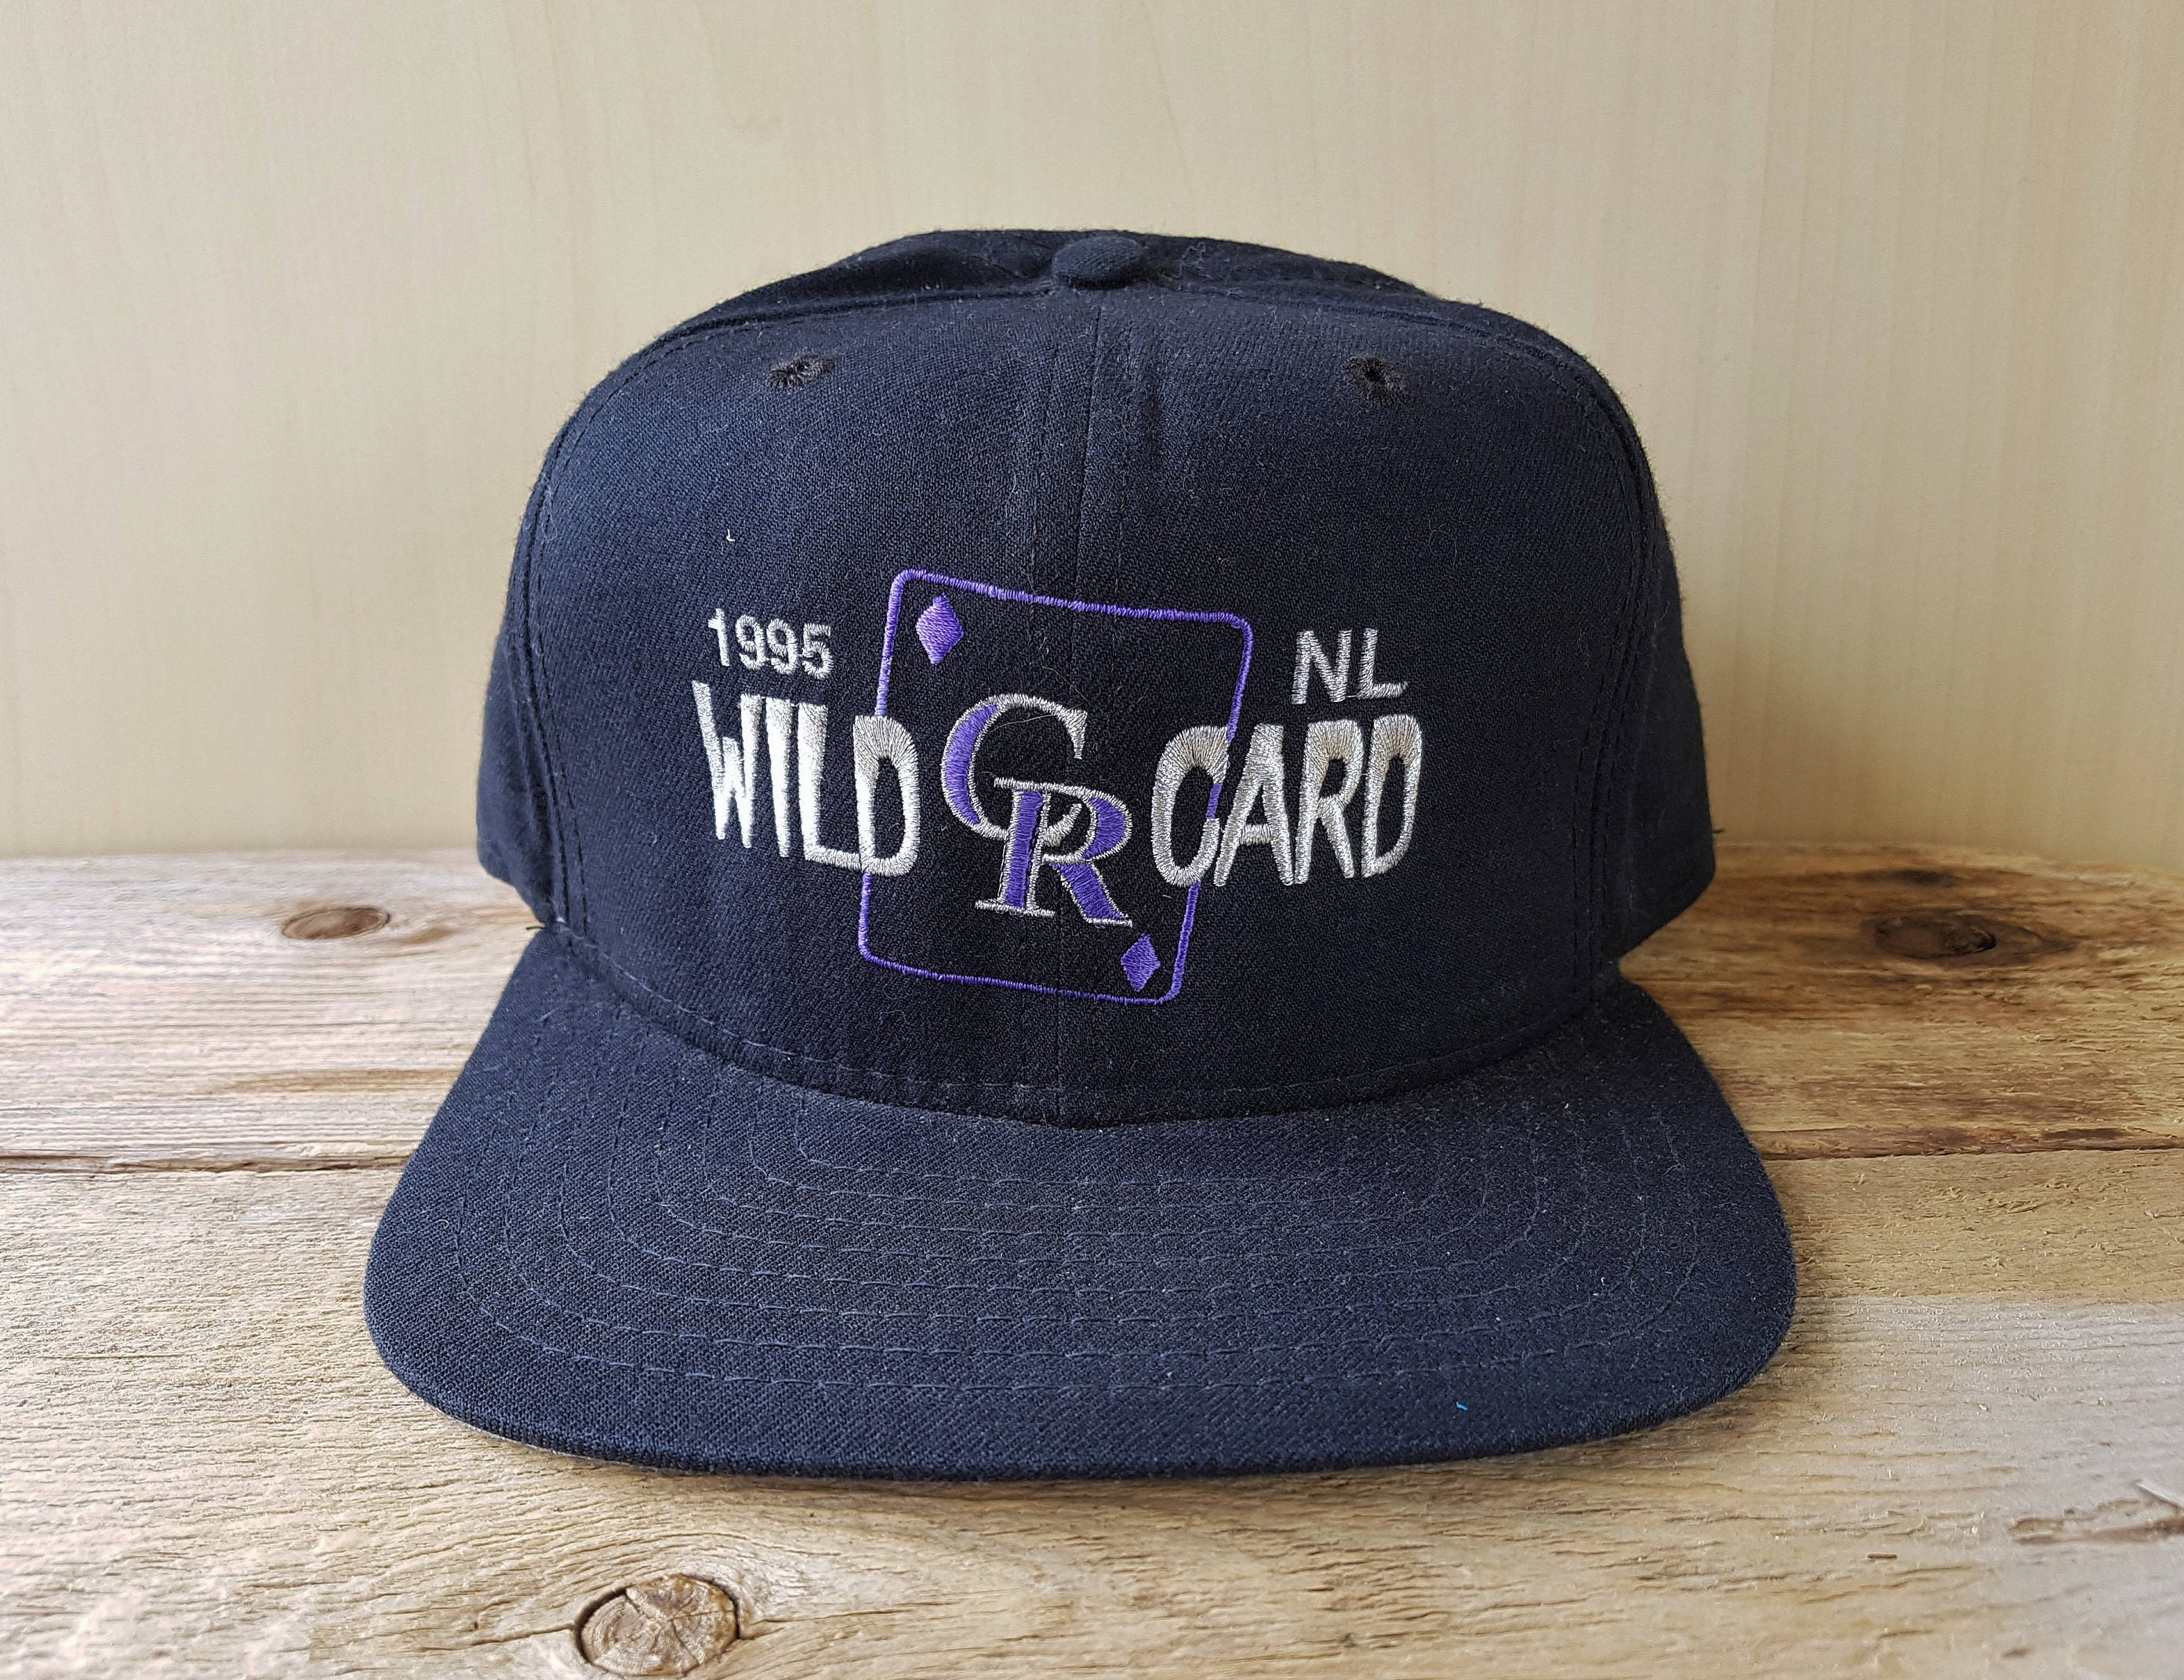 408e24700e3c8 COLORADO ROCKIES 1995 Wild Card Original Vintage New Era Pro Model Snapback  Hat Official MLB Baseball